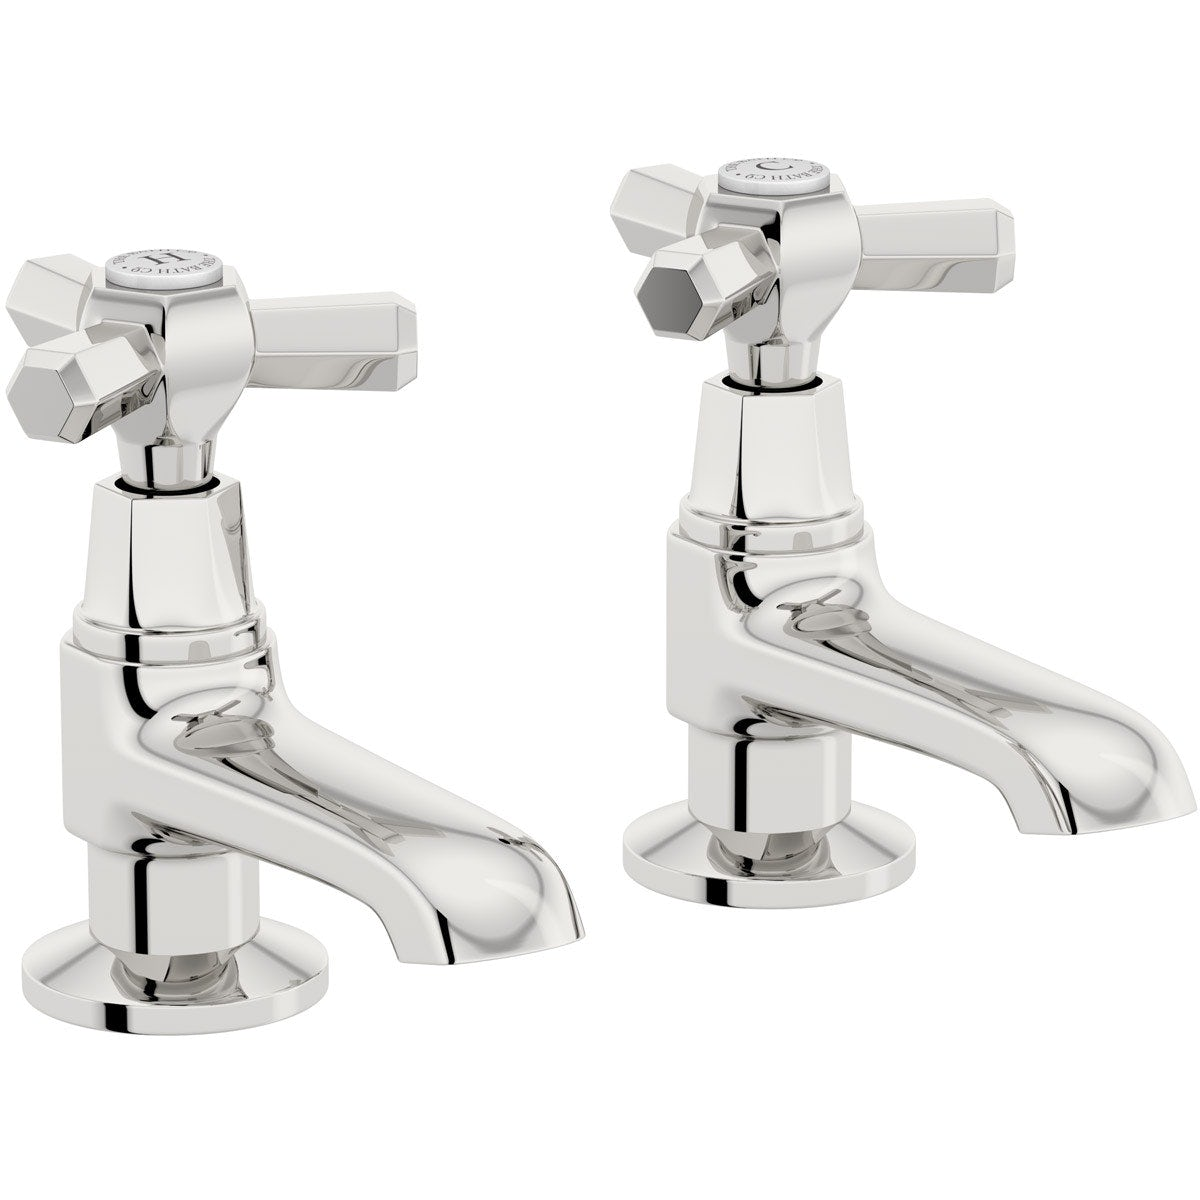 The Bath Co. Beaumont basin pillar taps offer pack